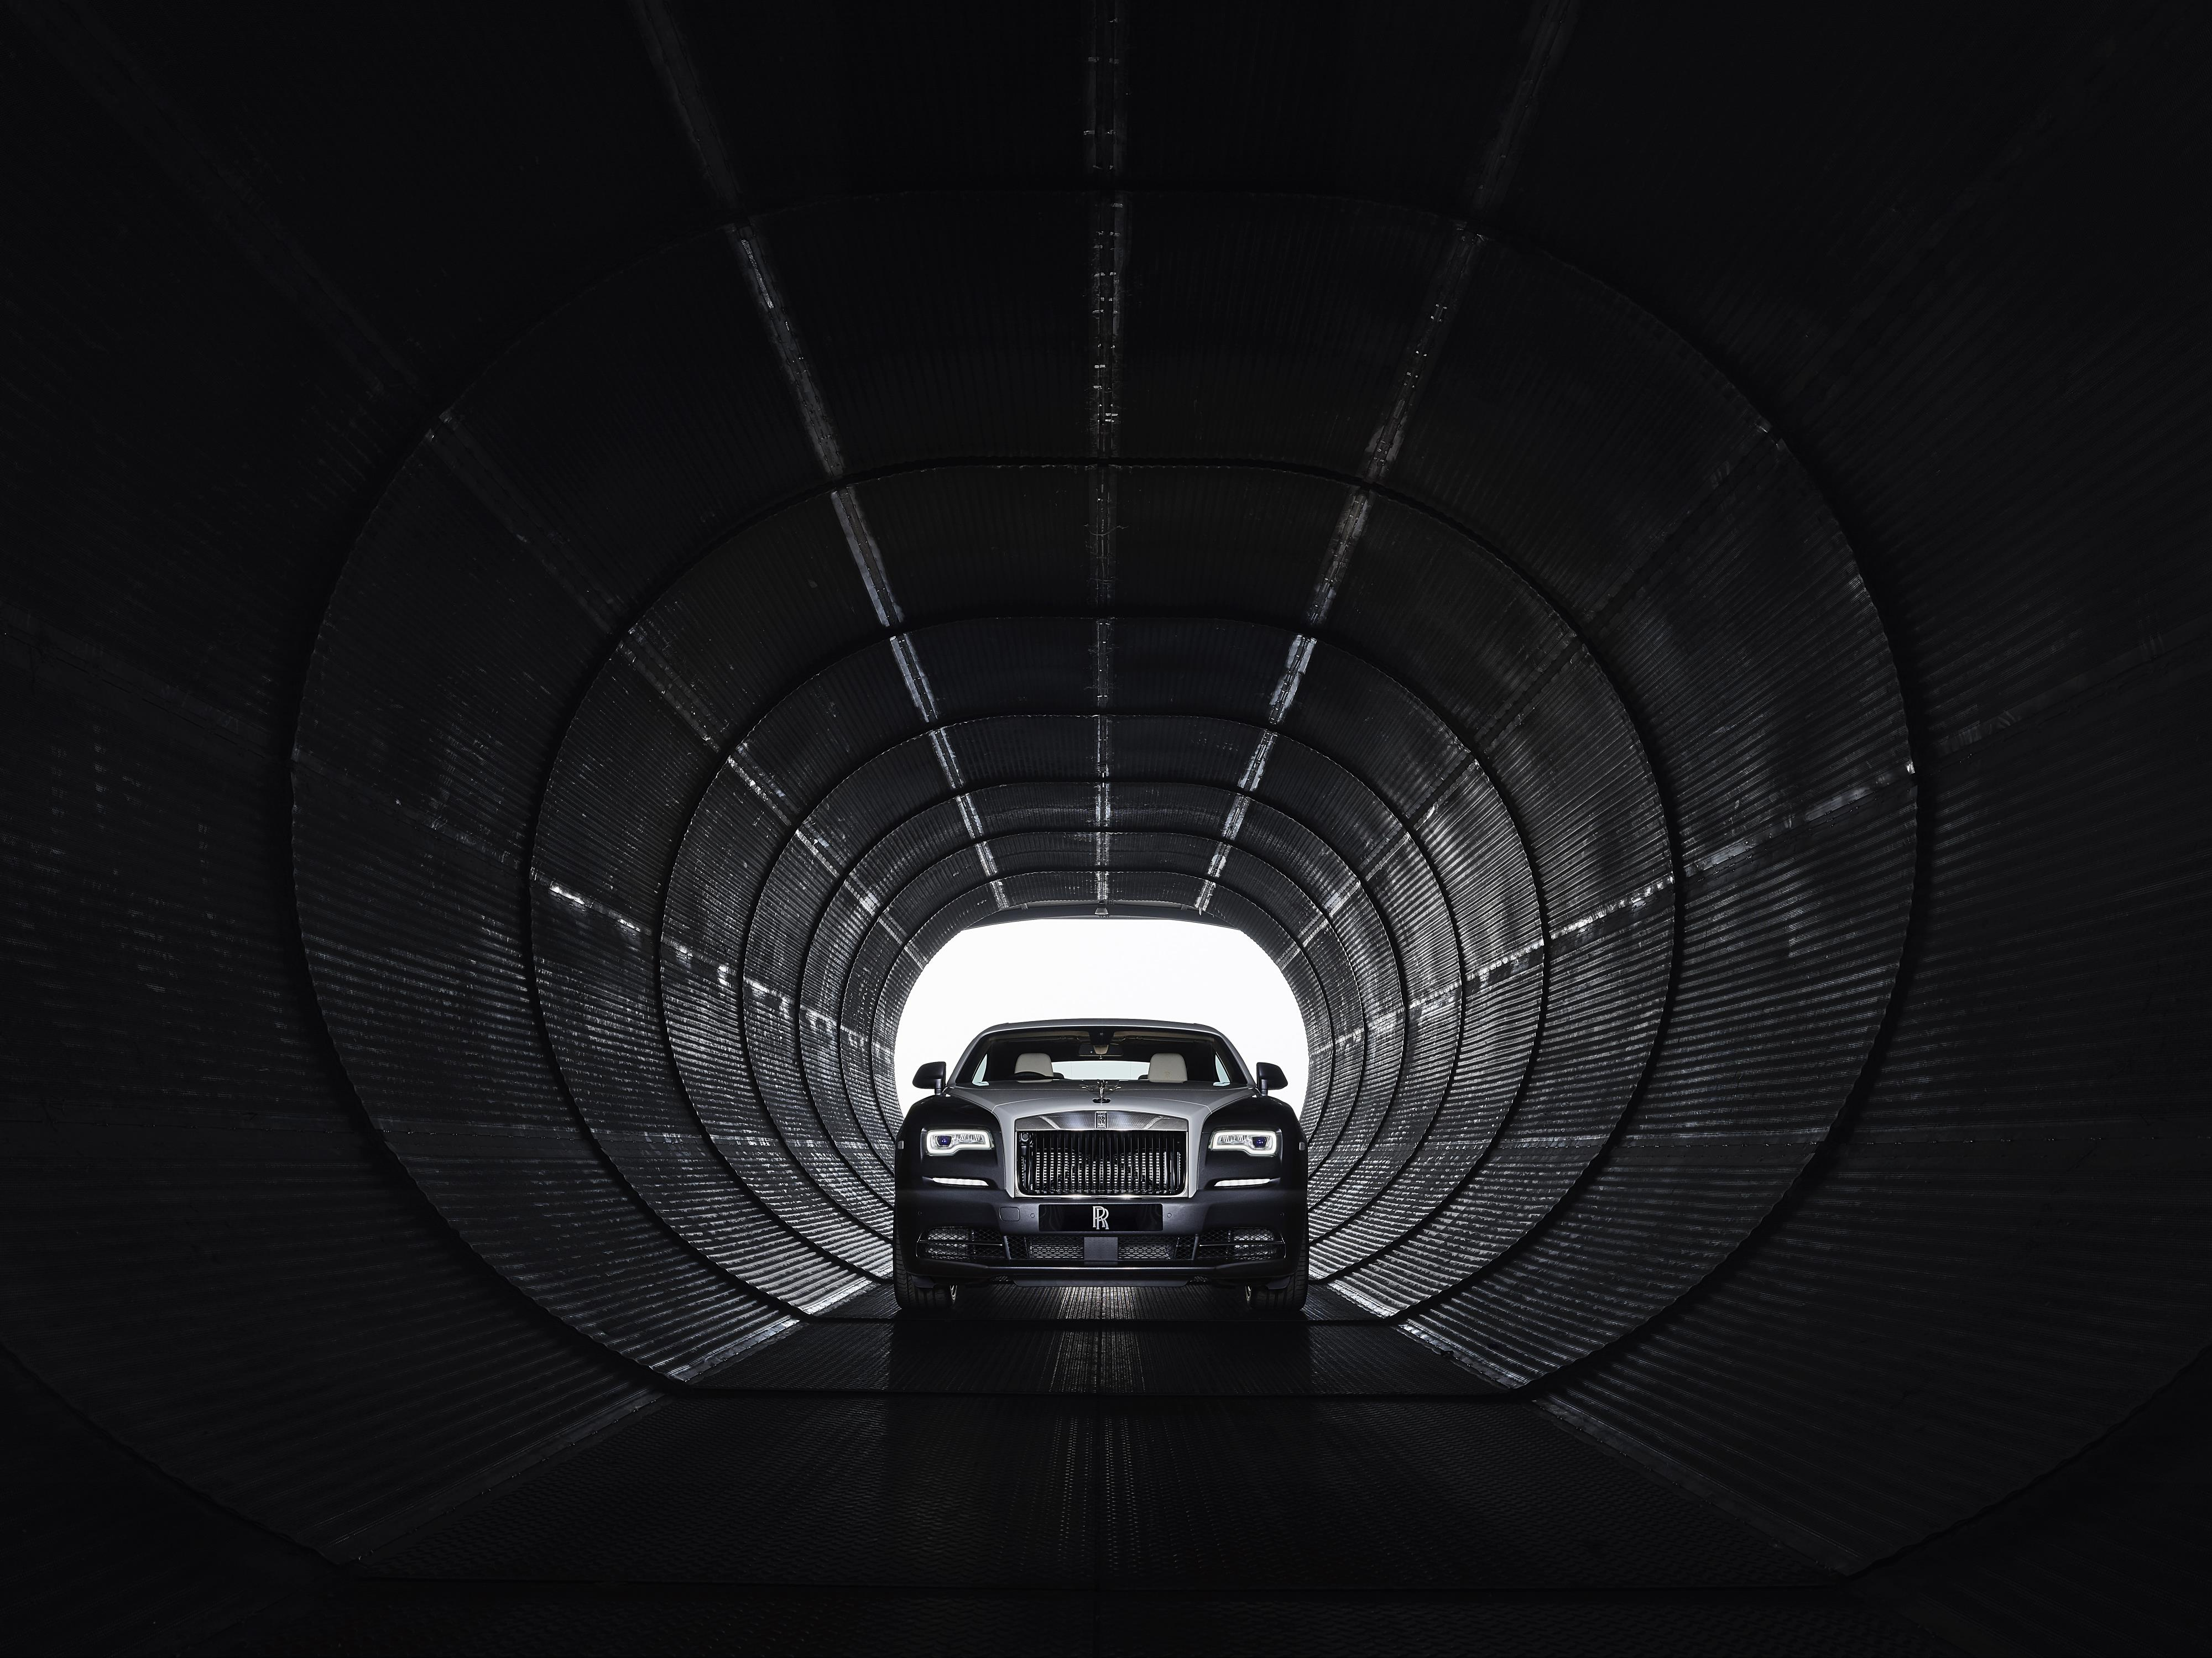 Rolls-Royce Wraith in Tunnel